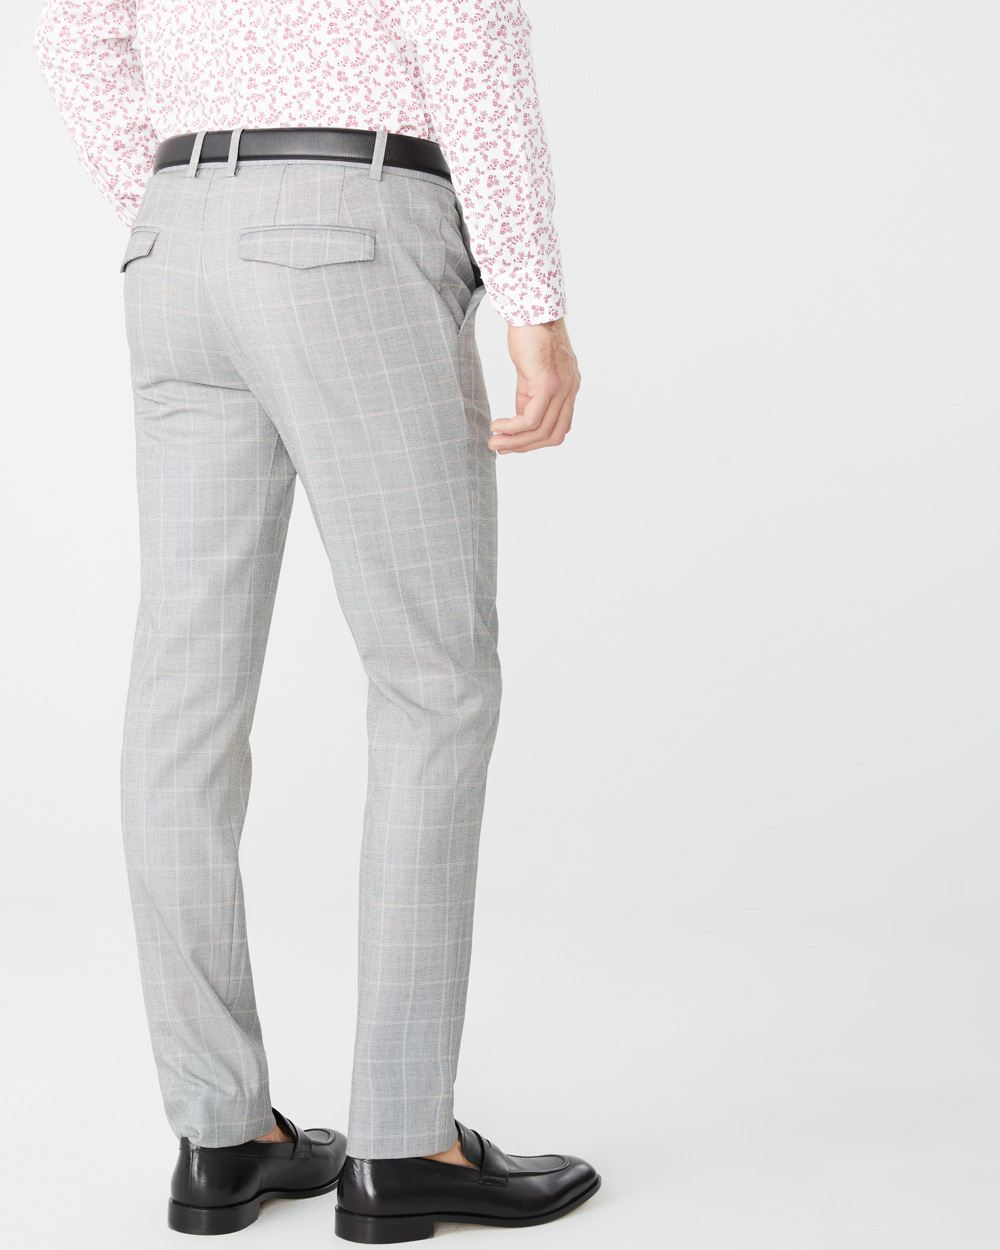 Slim fit beige windowpane City Pant - 30''